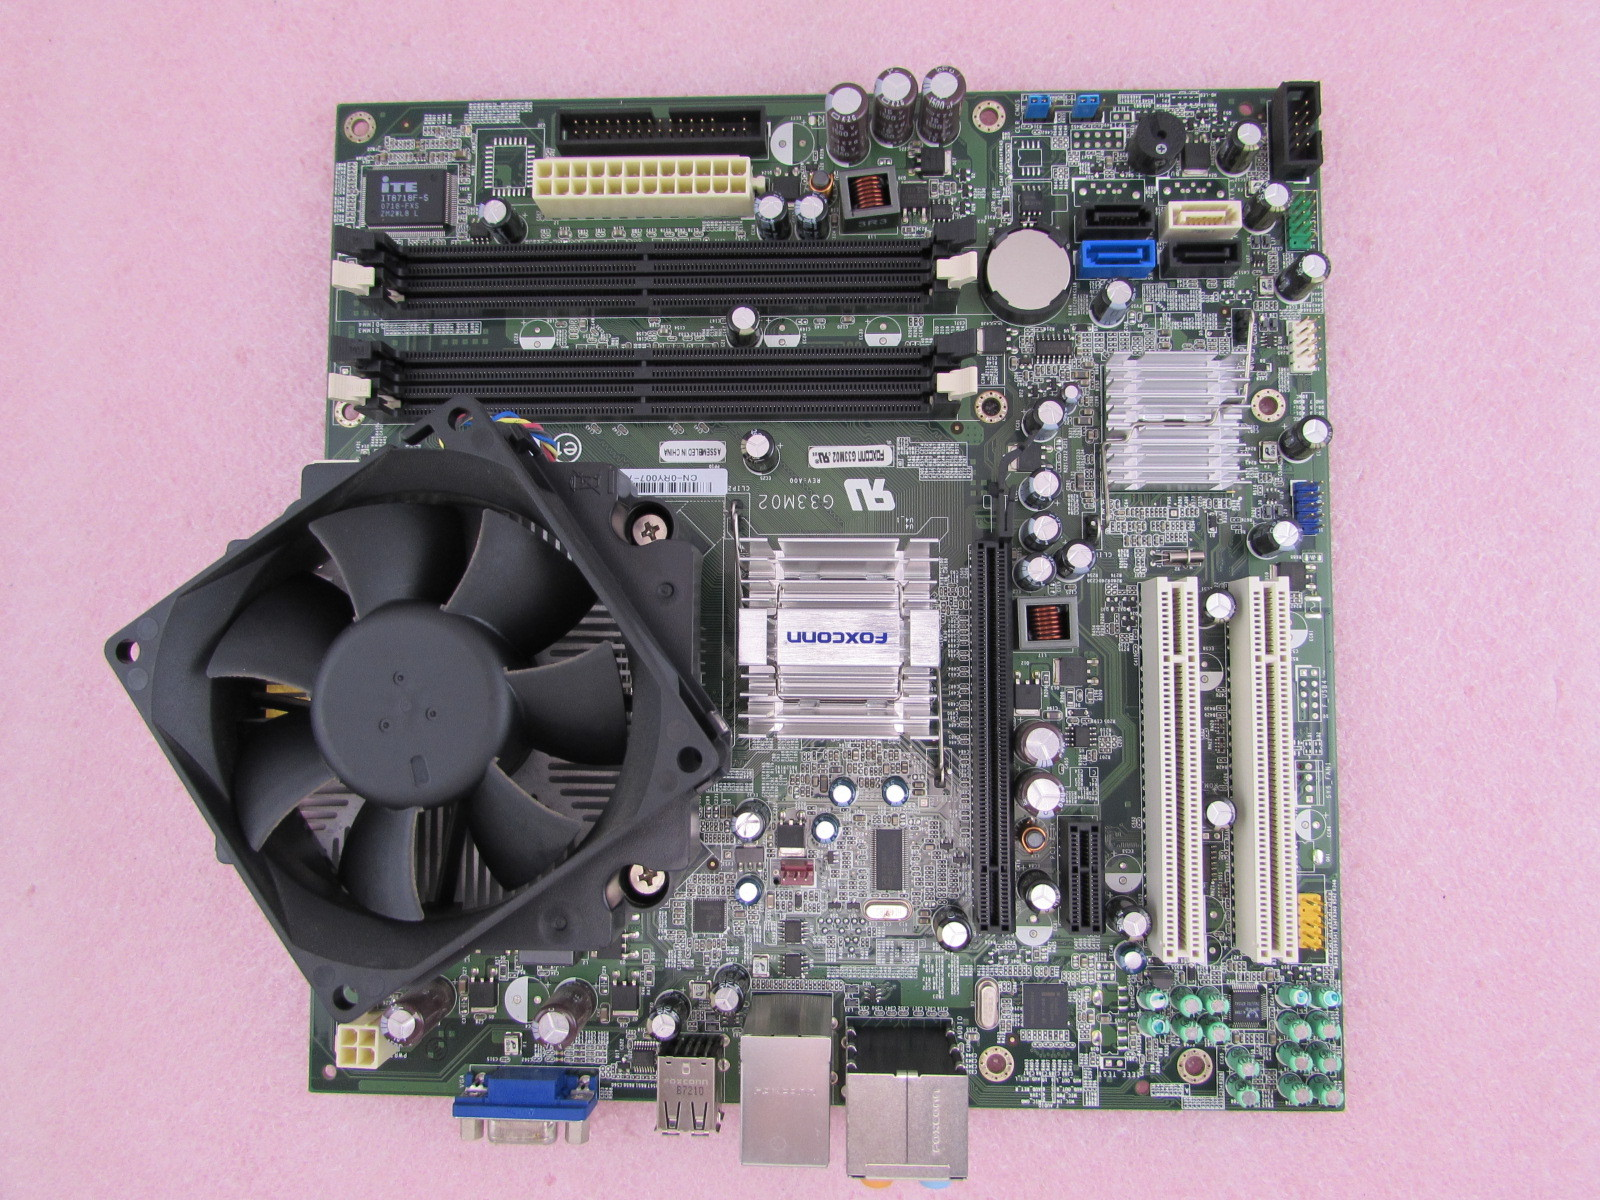 dell inspiron 530 motherboard diagram home cinema wiring schematic trusted online 546